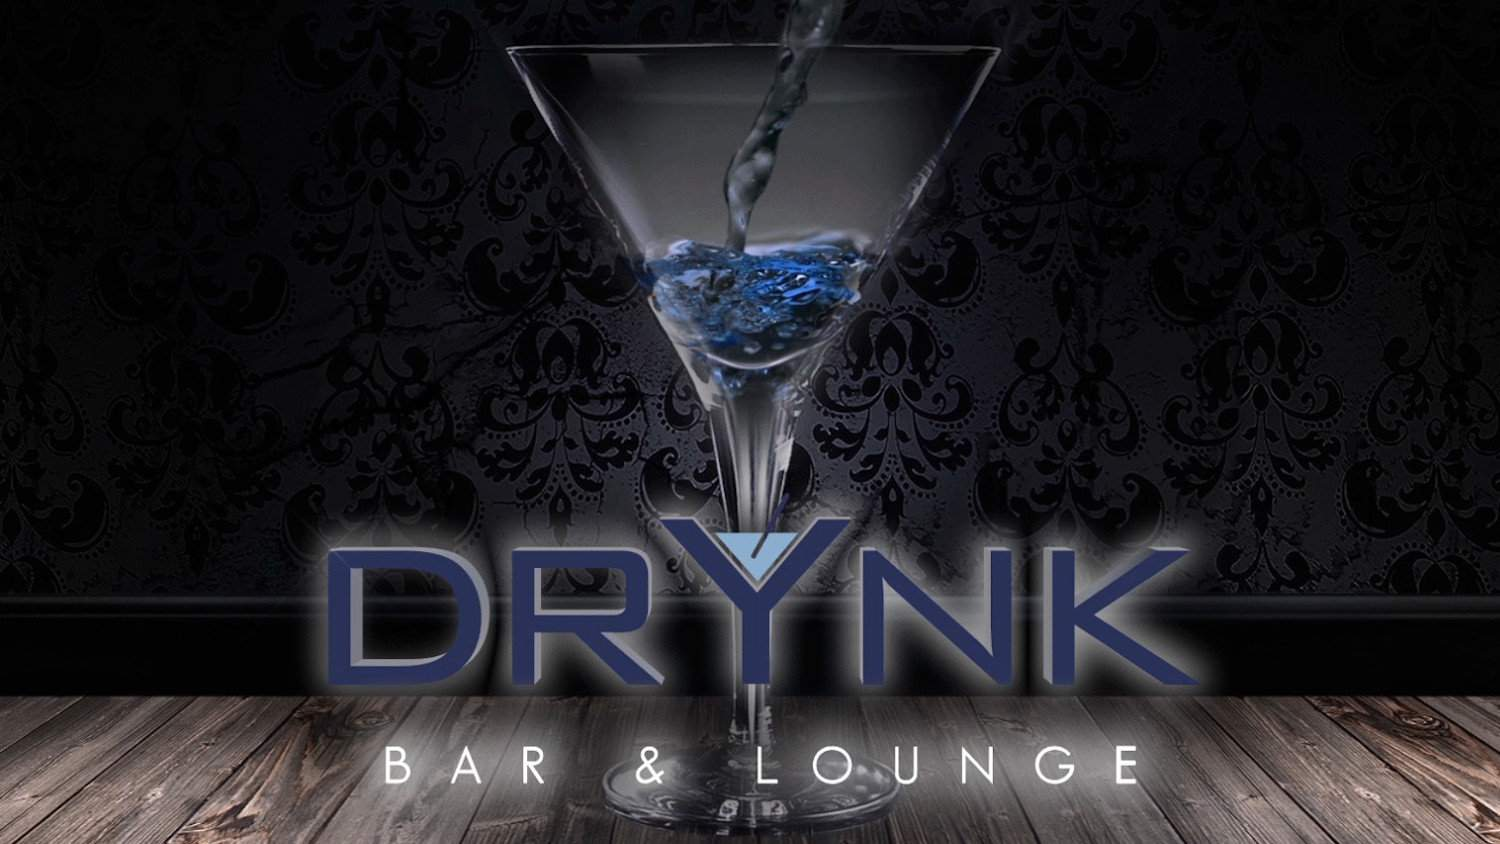 Drynk is usually a nice chilled gay bar, with excellent draft beers and cocktails